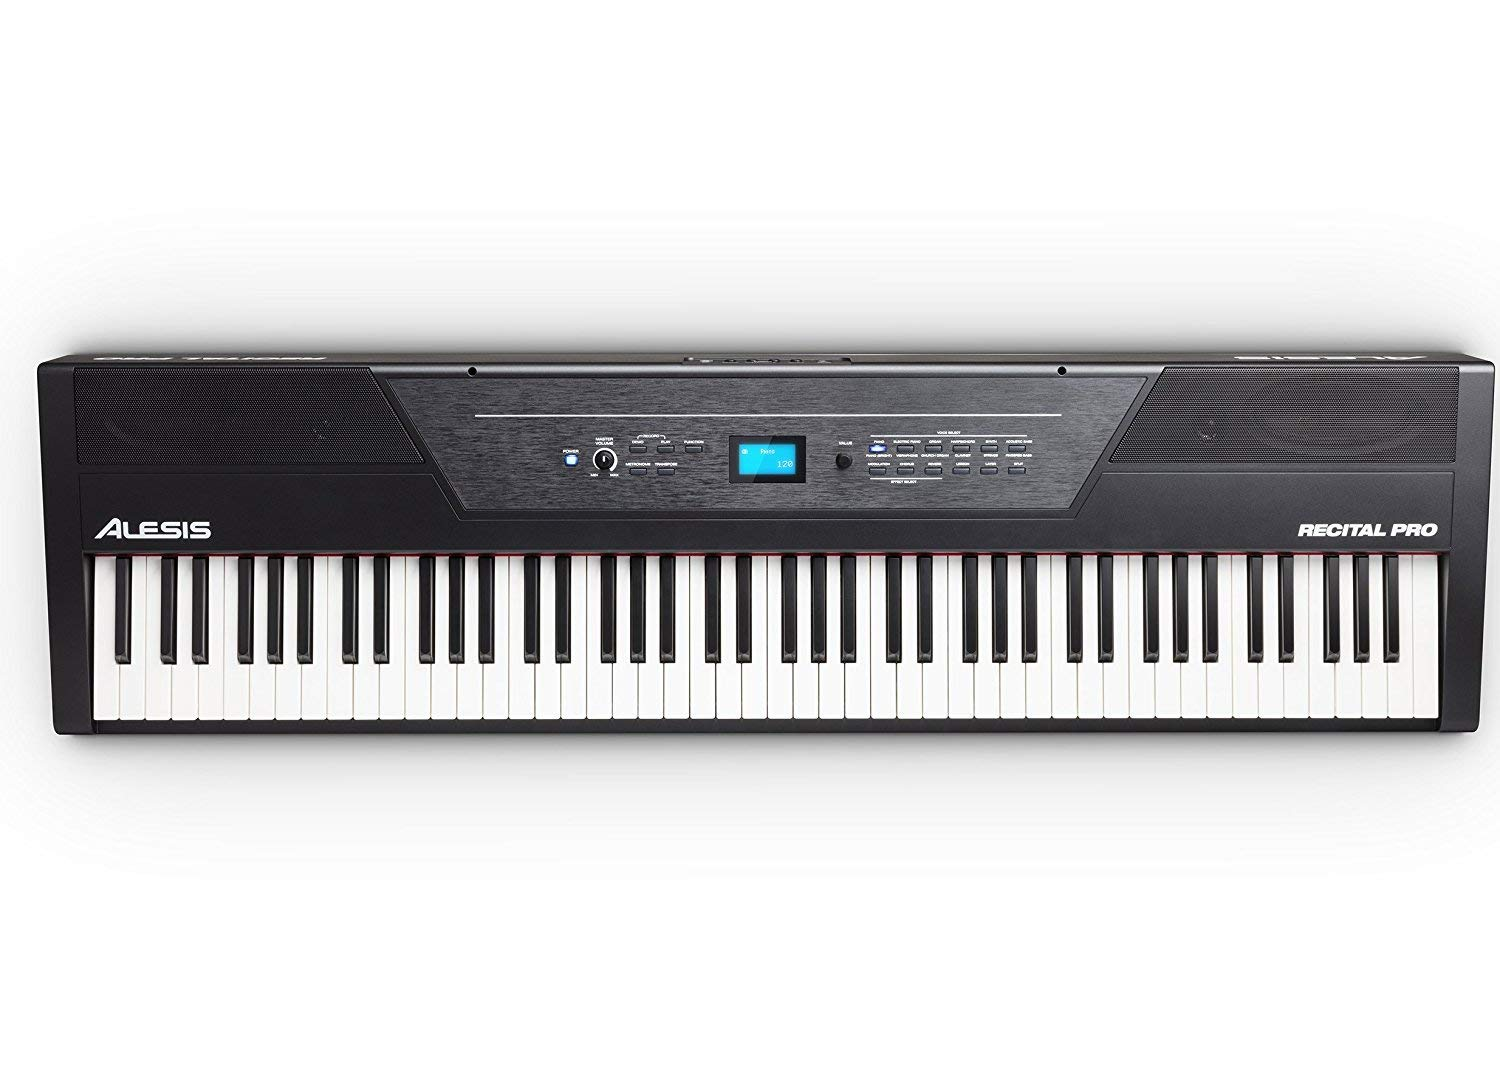 Alesis Recital Pro | Digital Piano / Keyboard with 88 Hammer Action Keys, 12 Premium Voices, 20W Built-in Speakers, Headphone Output and Educational Features by Alesis (Image #9)